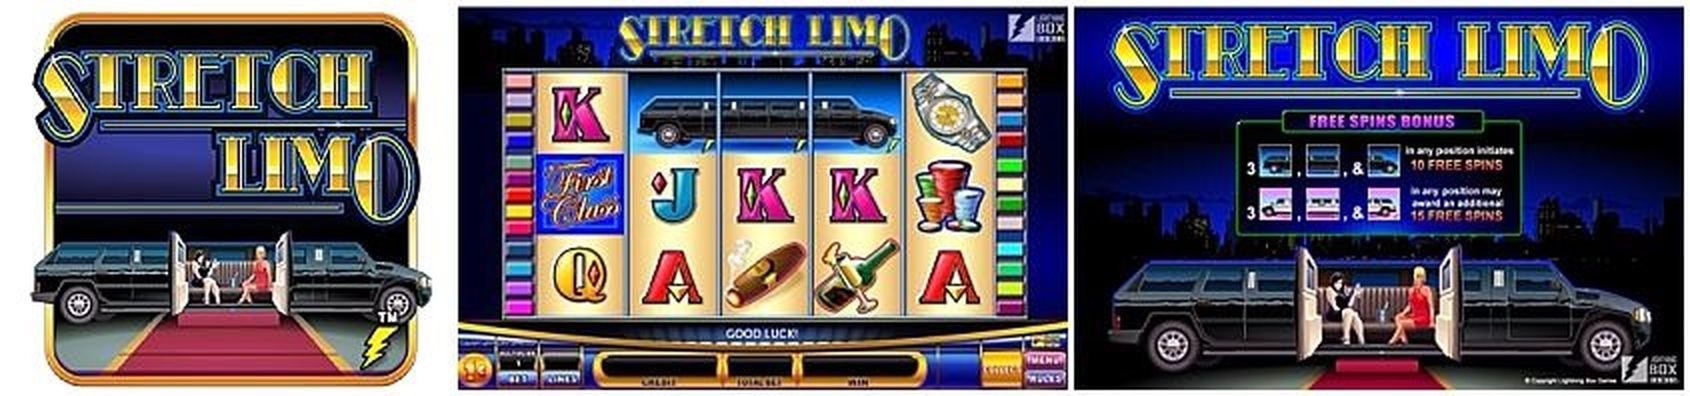 The Stretch Limo Online Slot Demo Game by Lightning Box